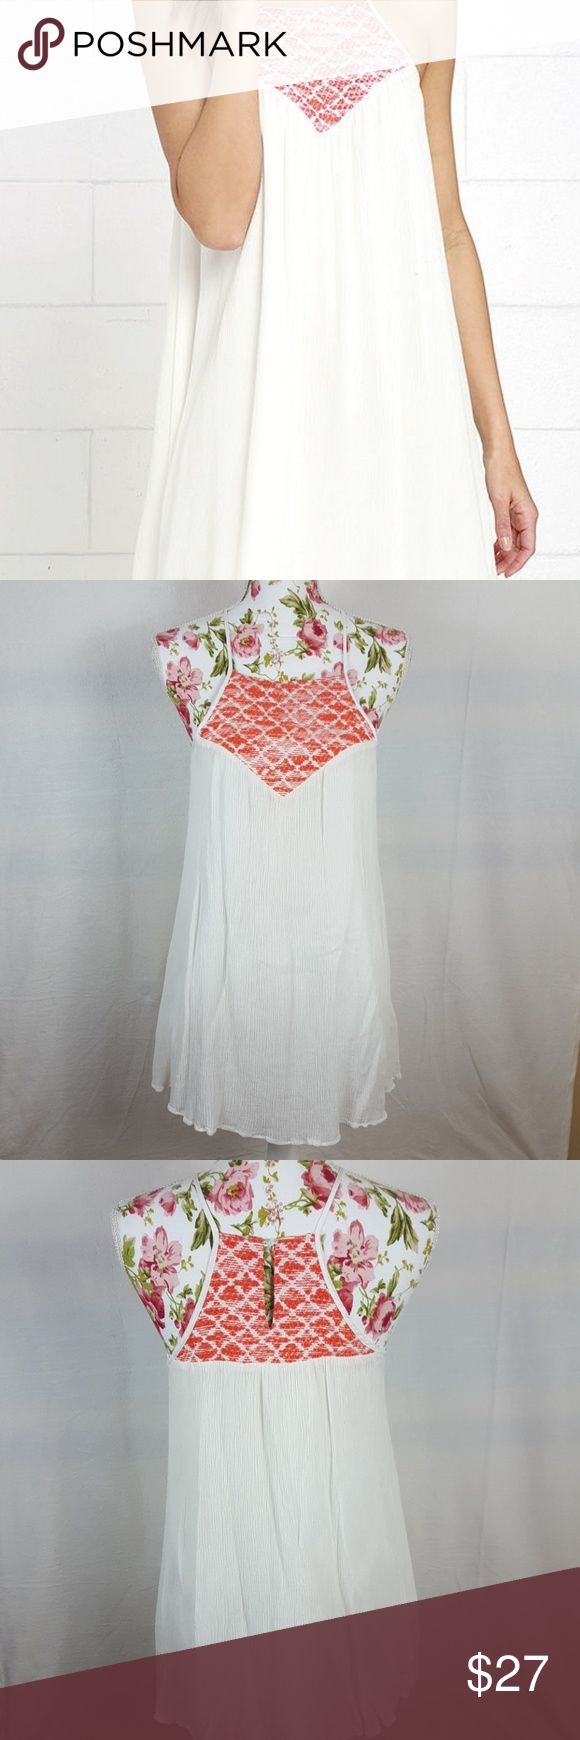 JACK BY BB DAKOTA Emberlynn Dress In Ivory DESCRIPTION  Breakaway from the everyday, and swing into the extraordinary Jack by BB Dakota Emberlynn Ivory Embroidered Dress! This adventurous rayon dress has a strappy apron neckline with vibrant coral embroidery front and back. Gauzy fabric carries into a playful trapeze silhouette. Back keyhole with top button. Euc.   Length: 33 inches from shoulder to hem BB Dakota Dresses